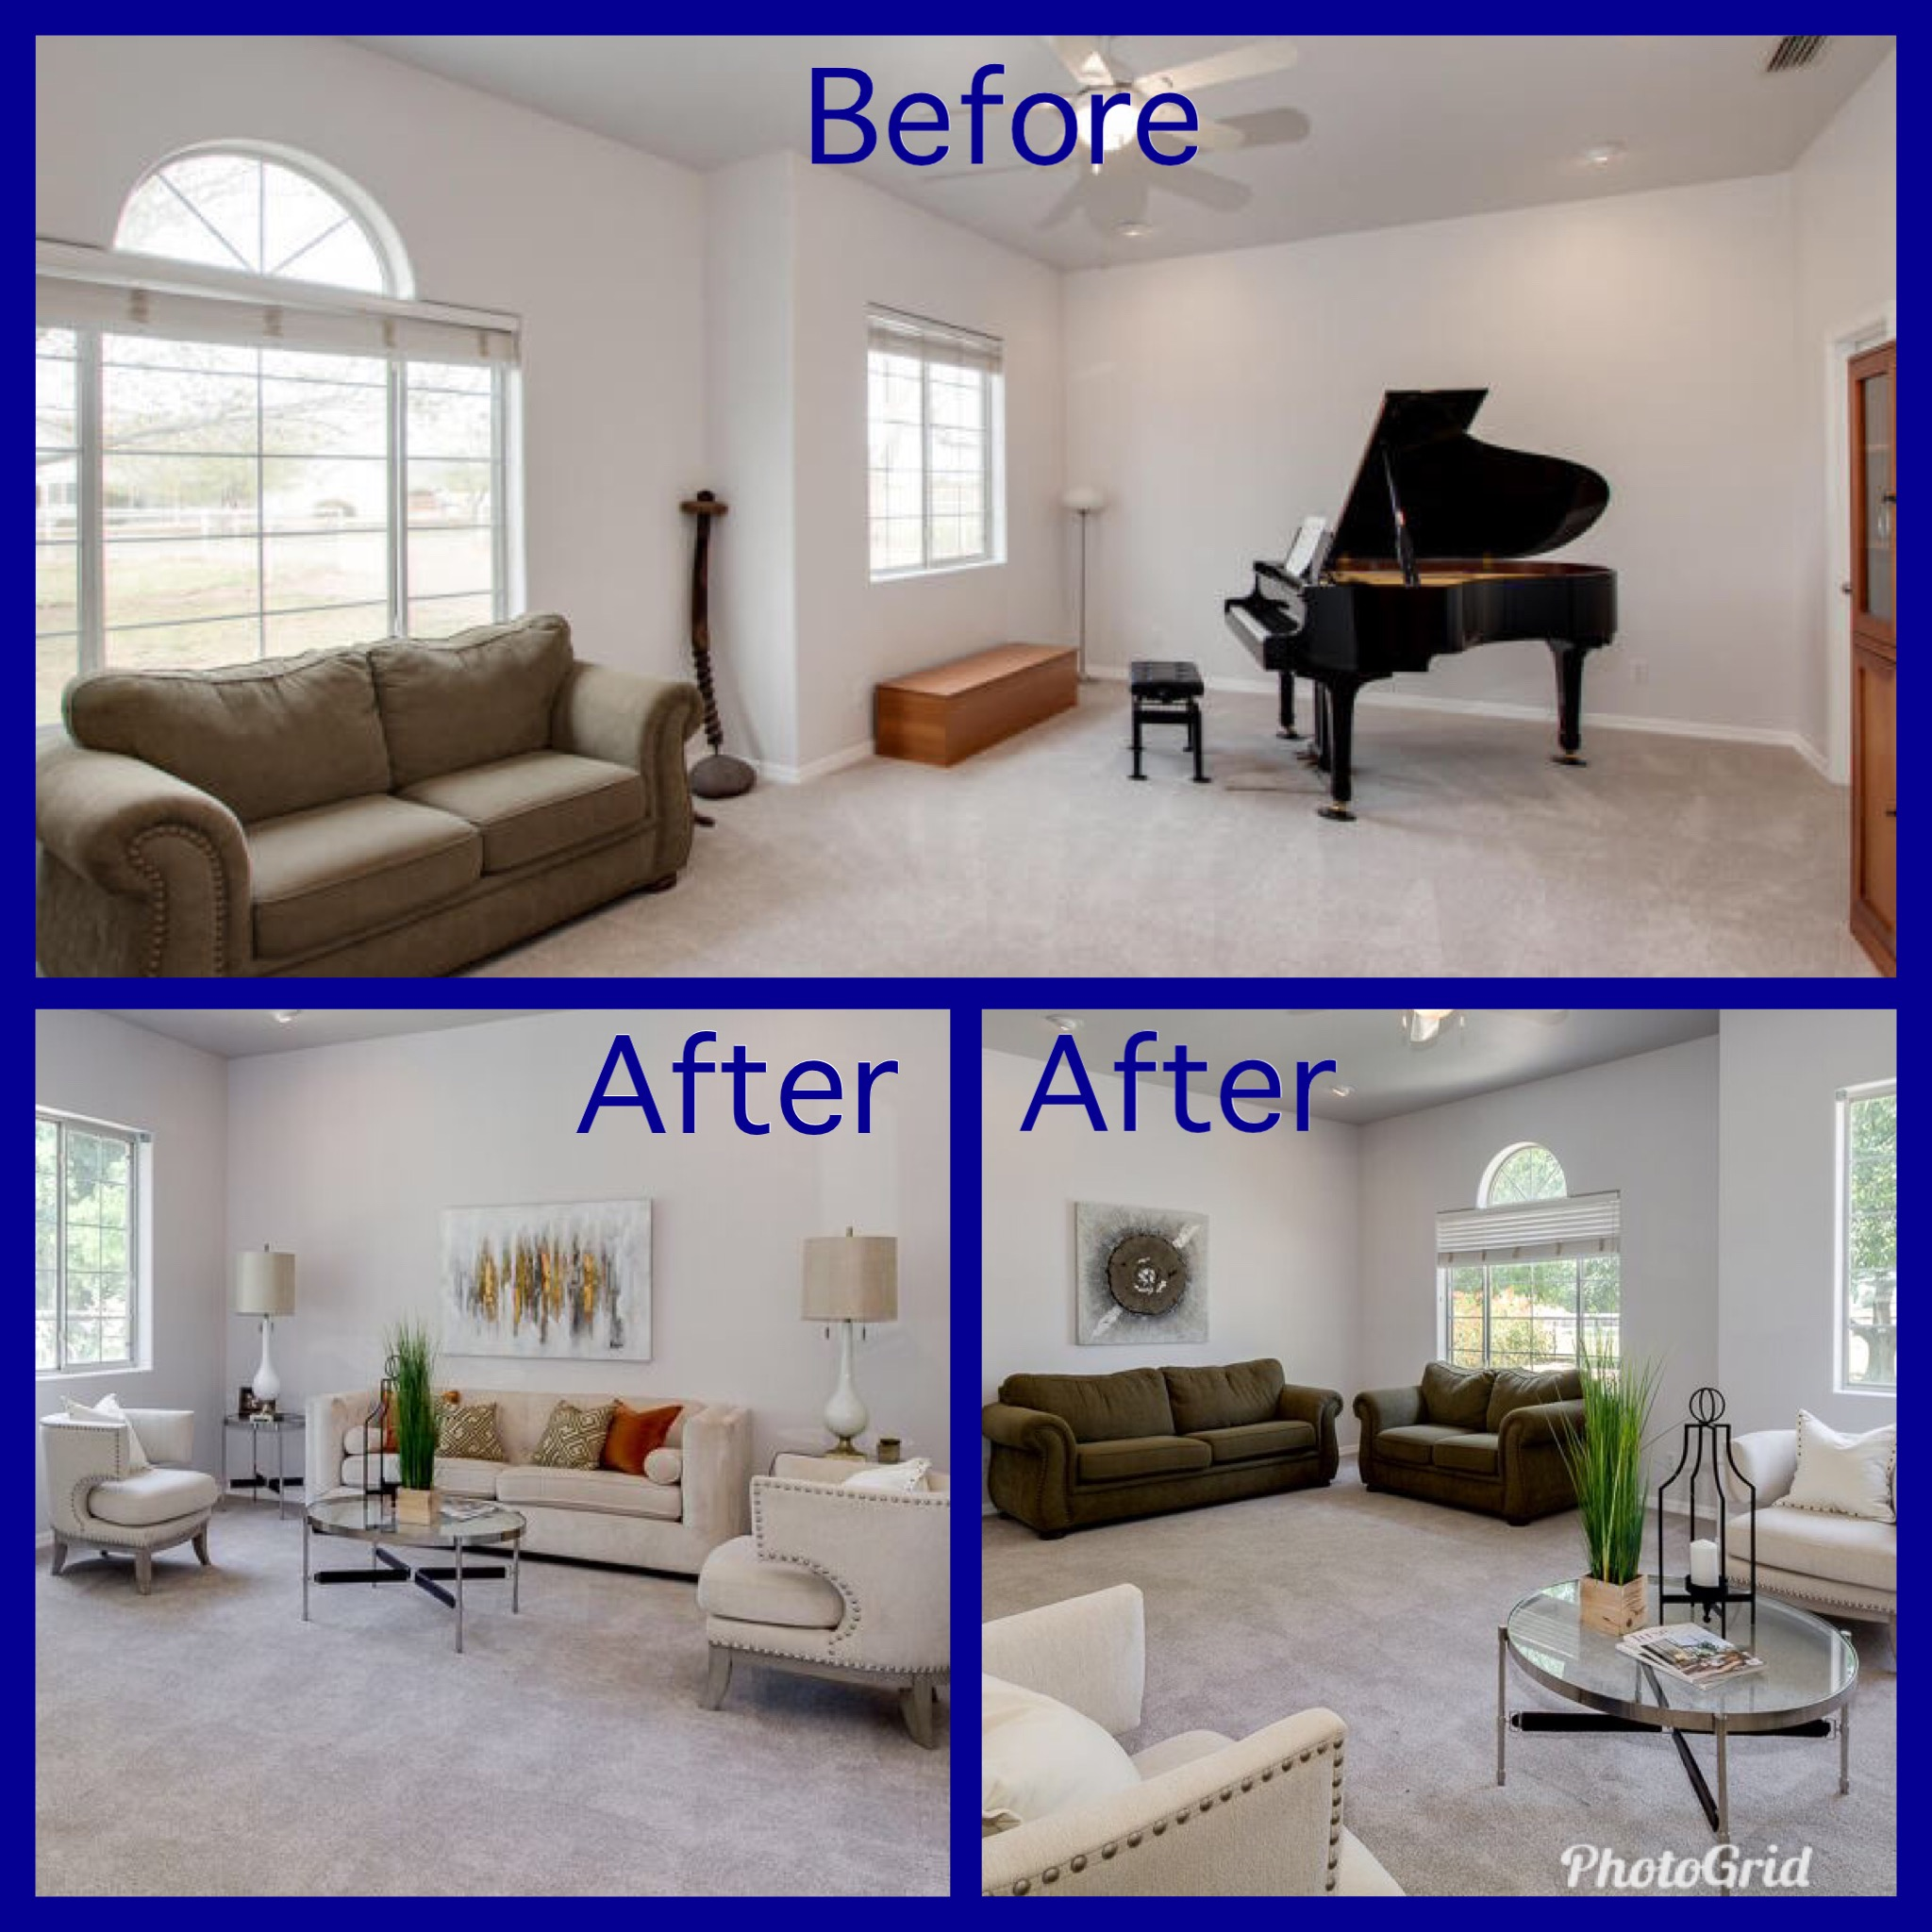 Home Staging Gallery: Before & After Home Staging!